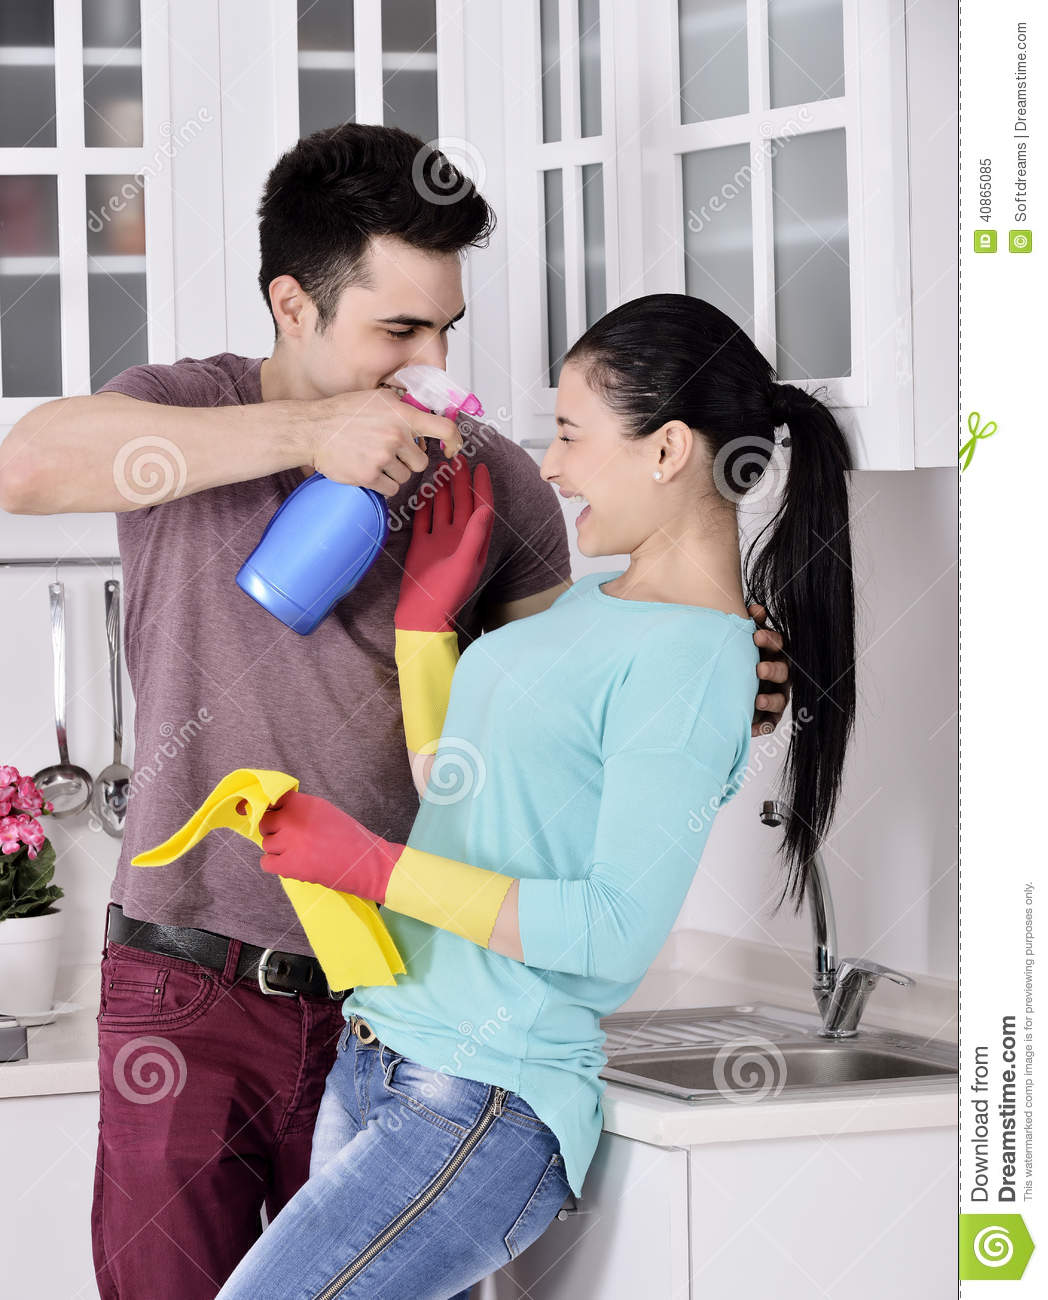 Happy Girl Kitchen: Happiness Couple After Cleaning The House Royalty-Free